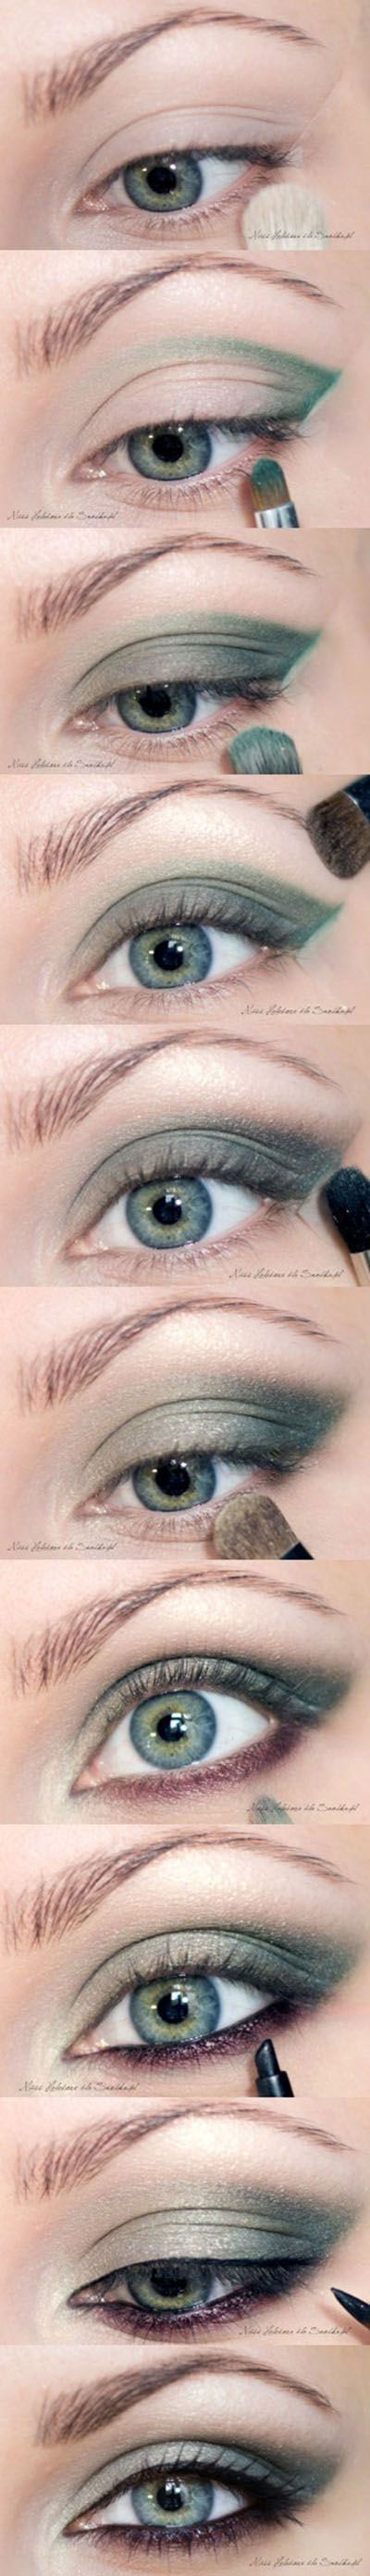 10-Easy-Simple-Winter-Makeup-Tutorials-For-Beginners-Learners-2016-9